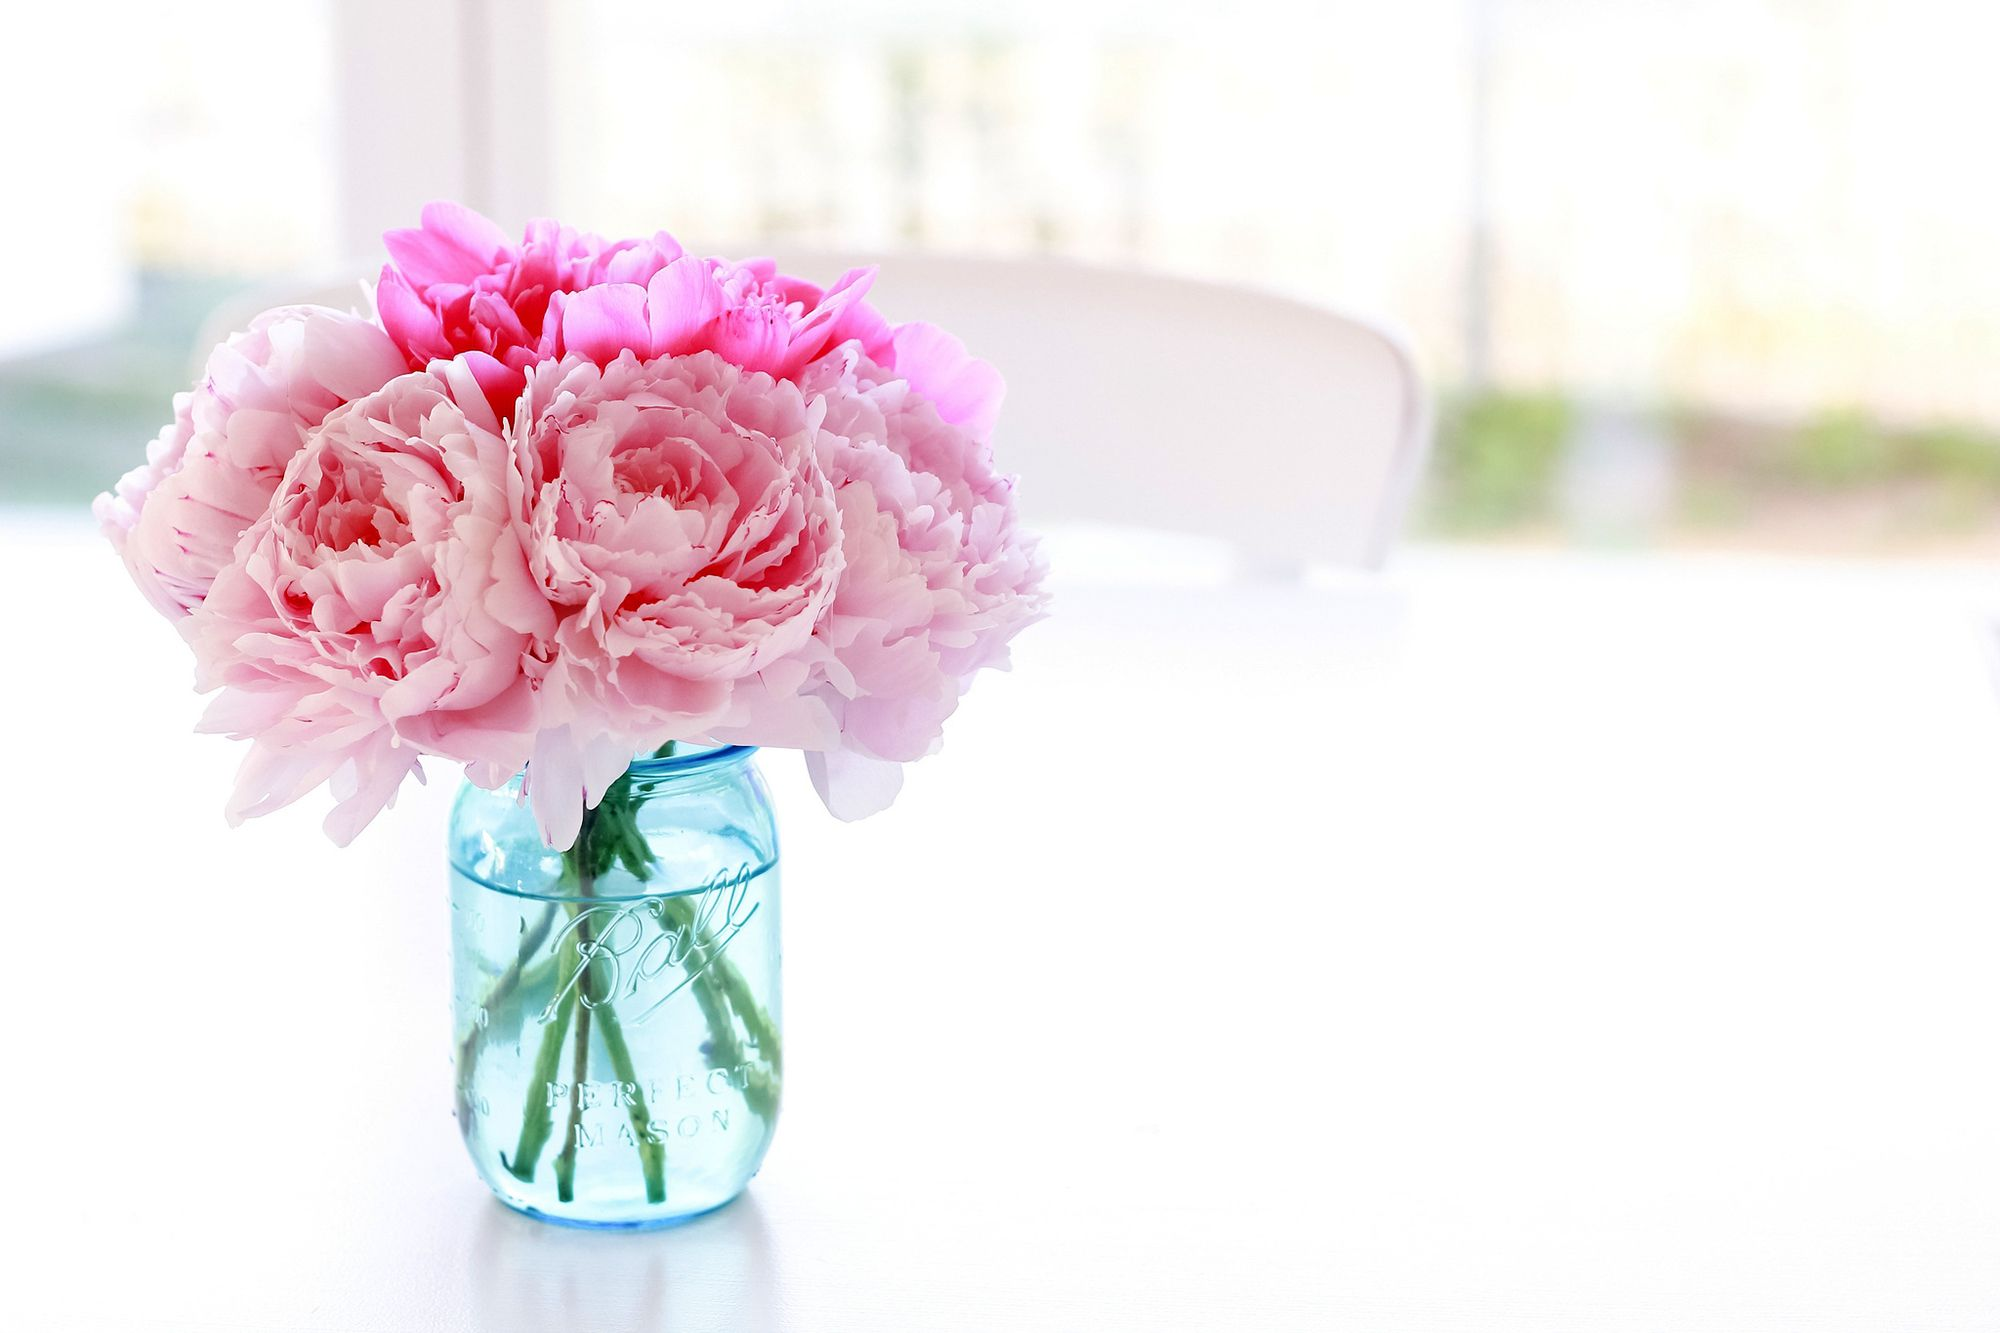 Peonies Bouquet Wallpaper Peonies Jar Pink Color Flowers Flowers